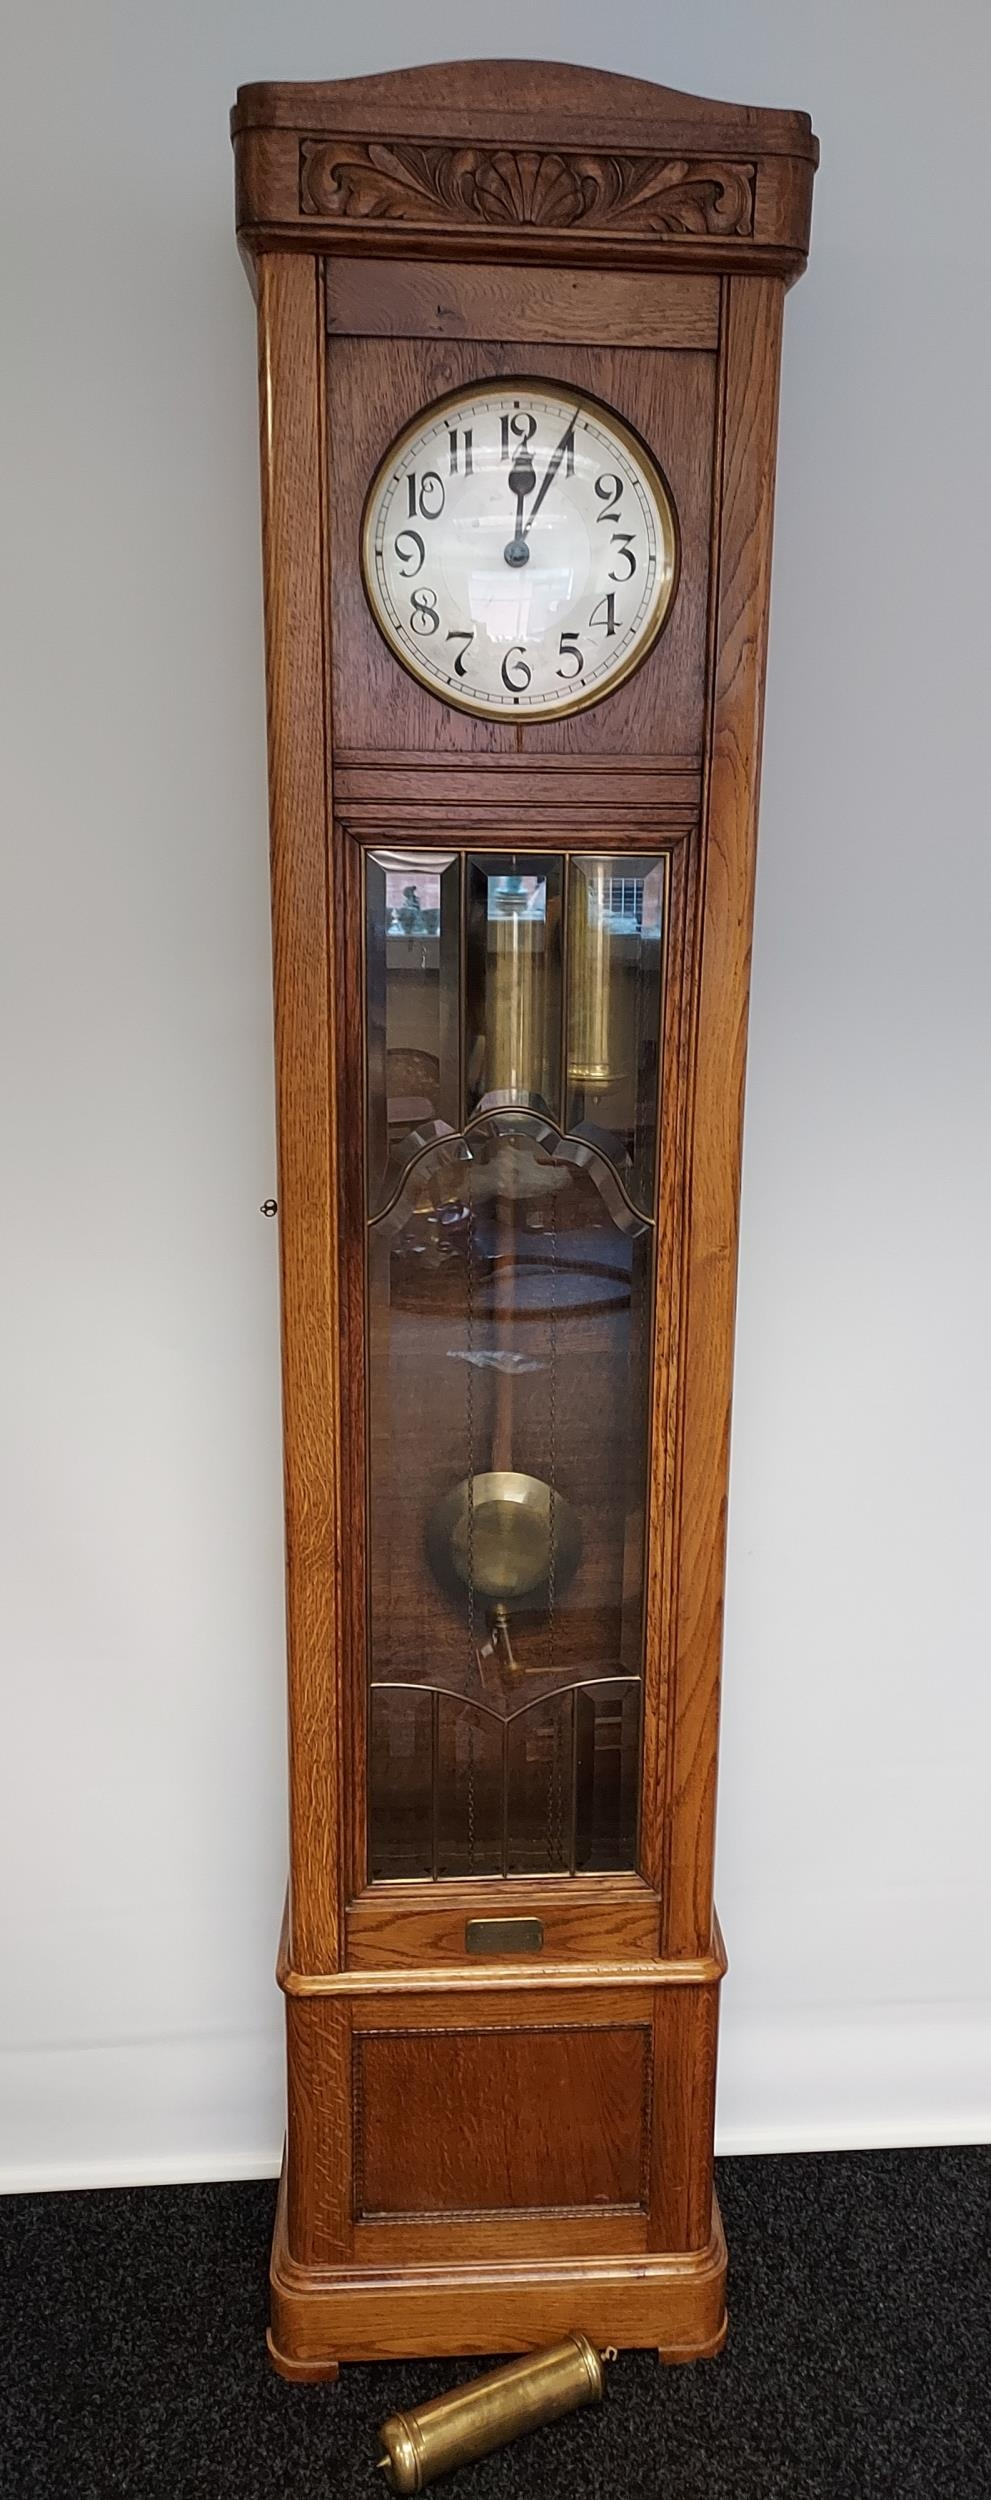 An oak cased Grandfather clock, with hand carved foliage design to the upper section, silver and